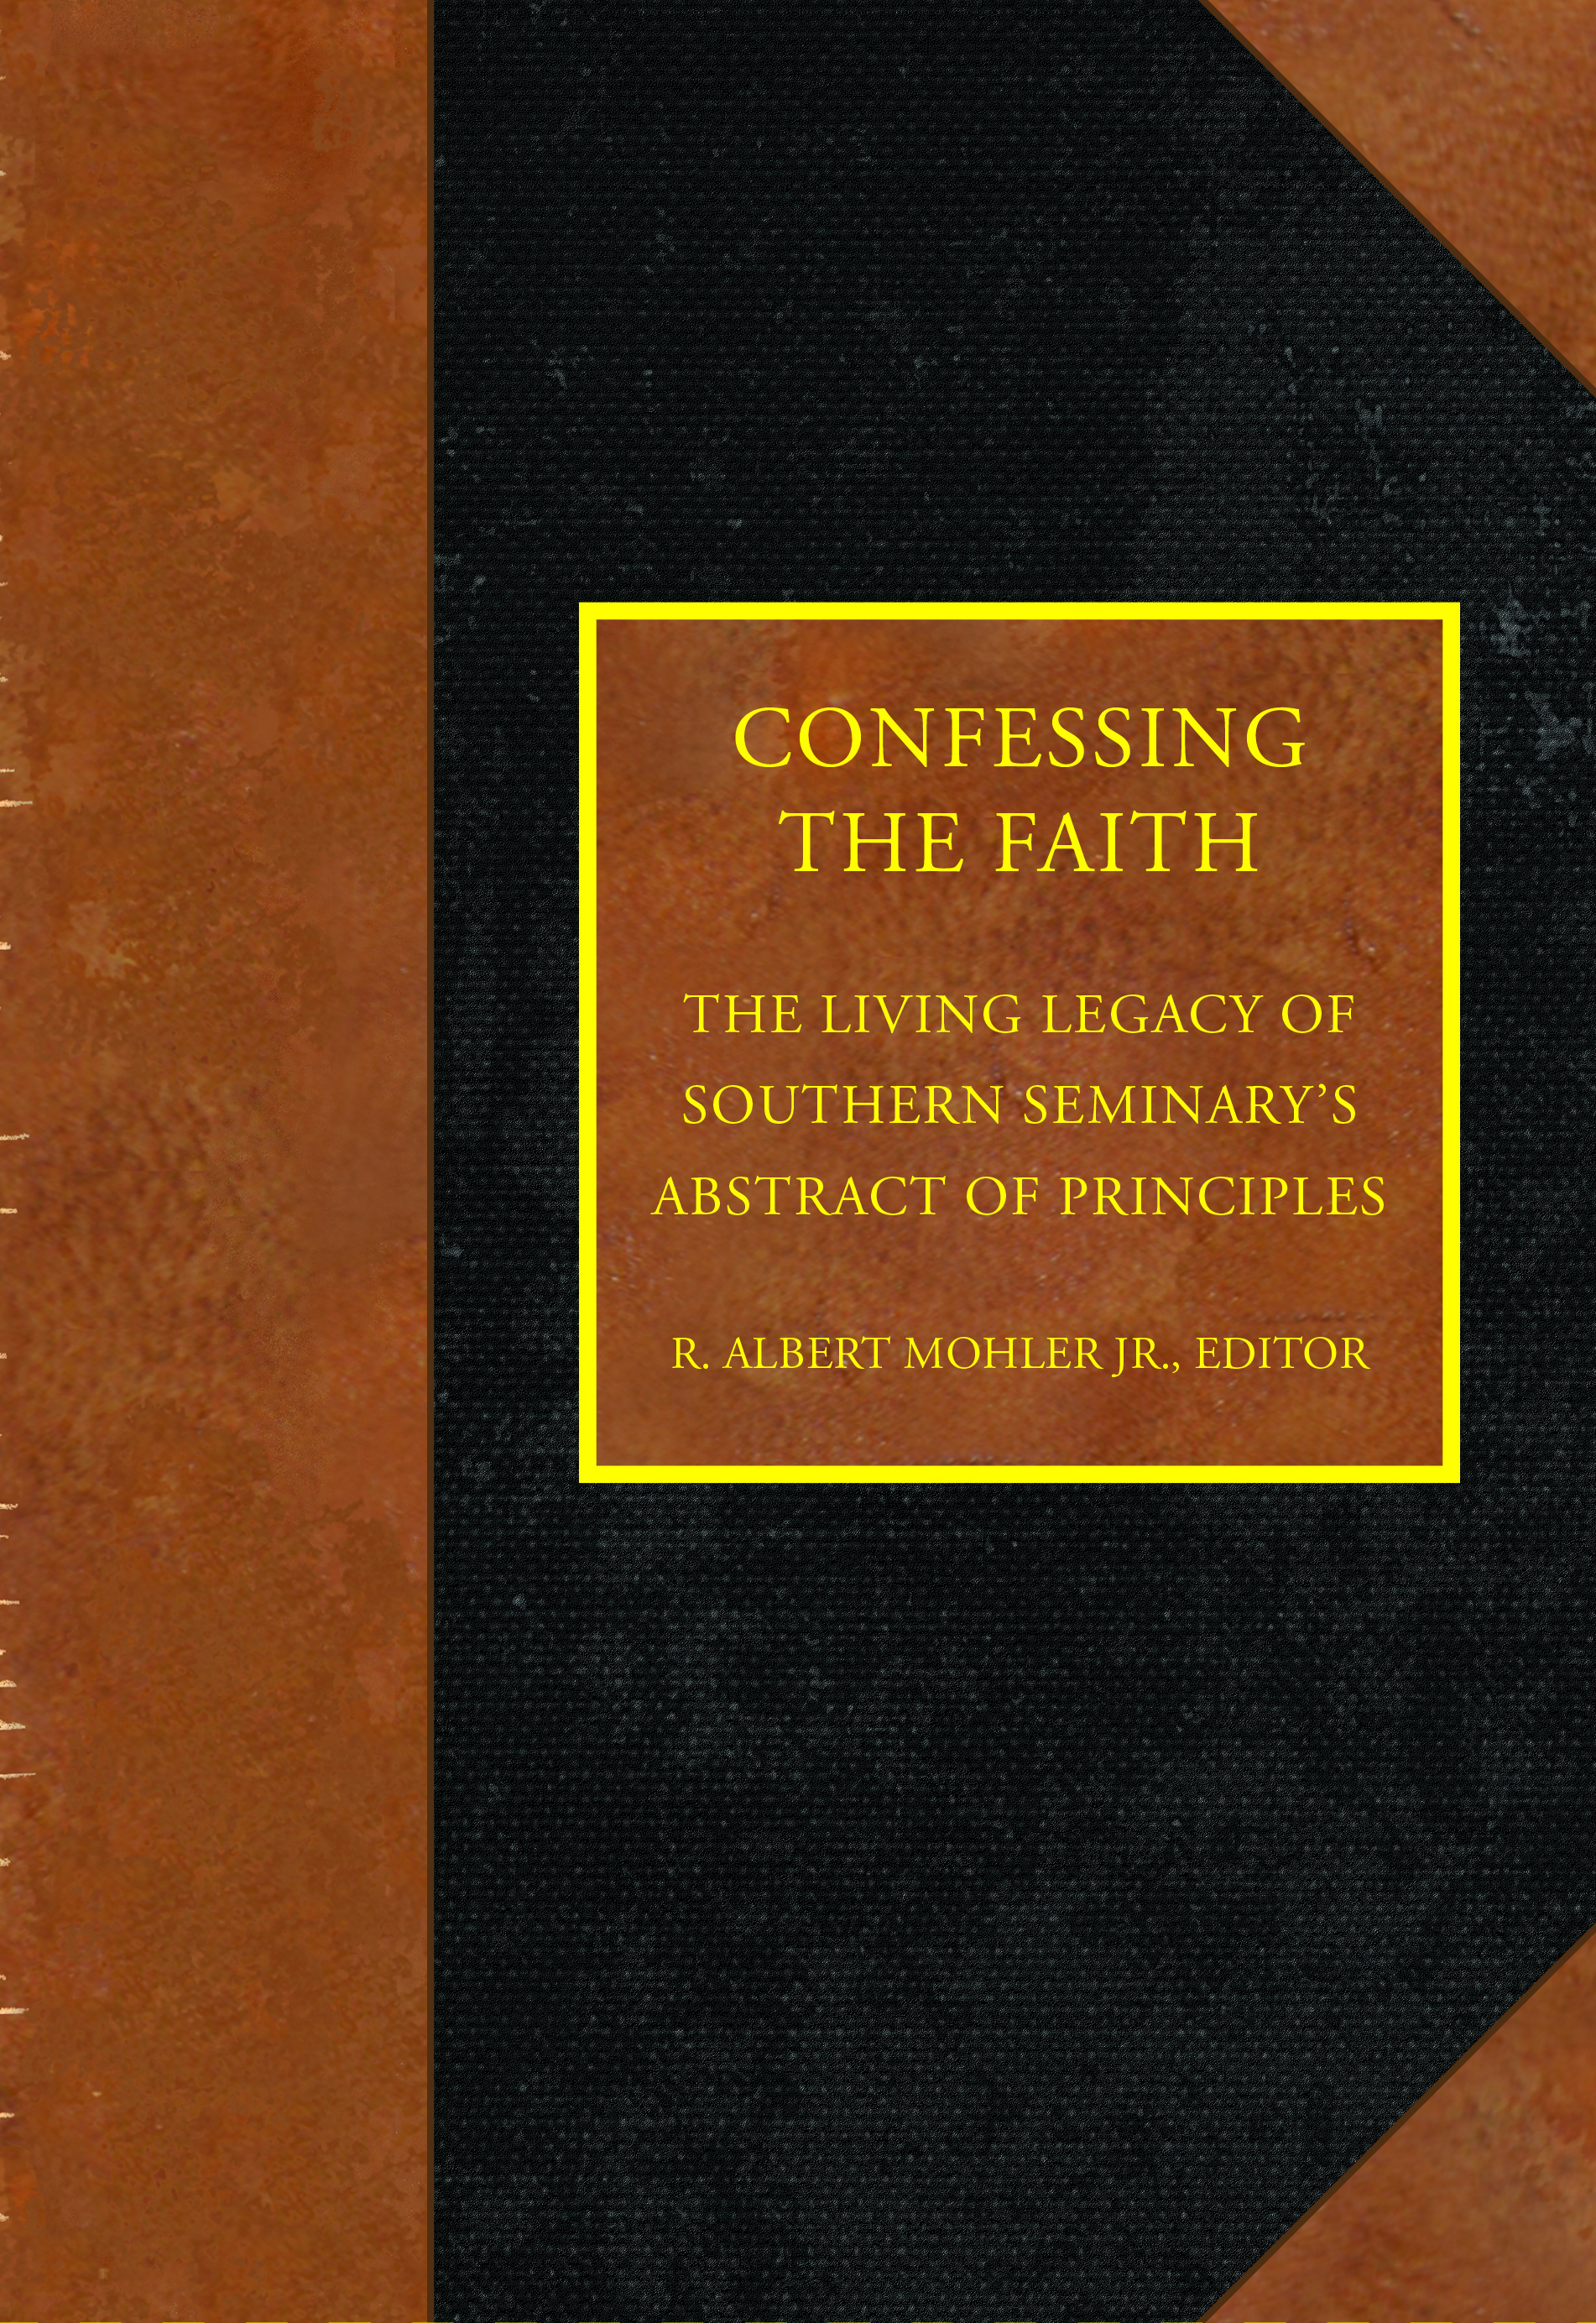 Confessing the Faith: The Living Legacy of Southern Seminary's Abstract of Principles by R. Albert Mohler Jr., editor